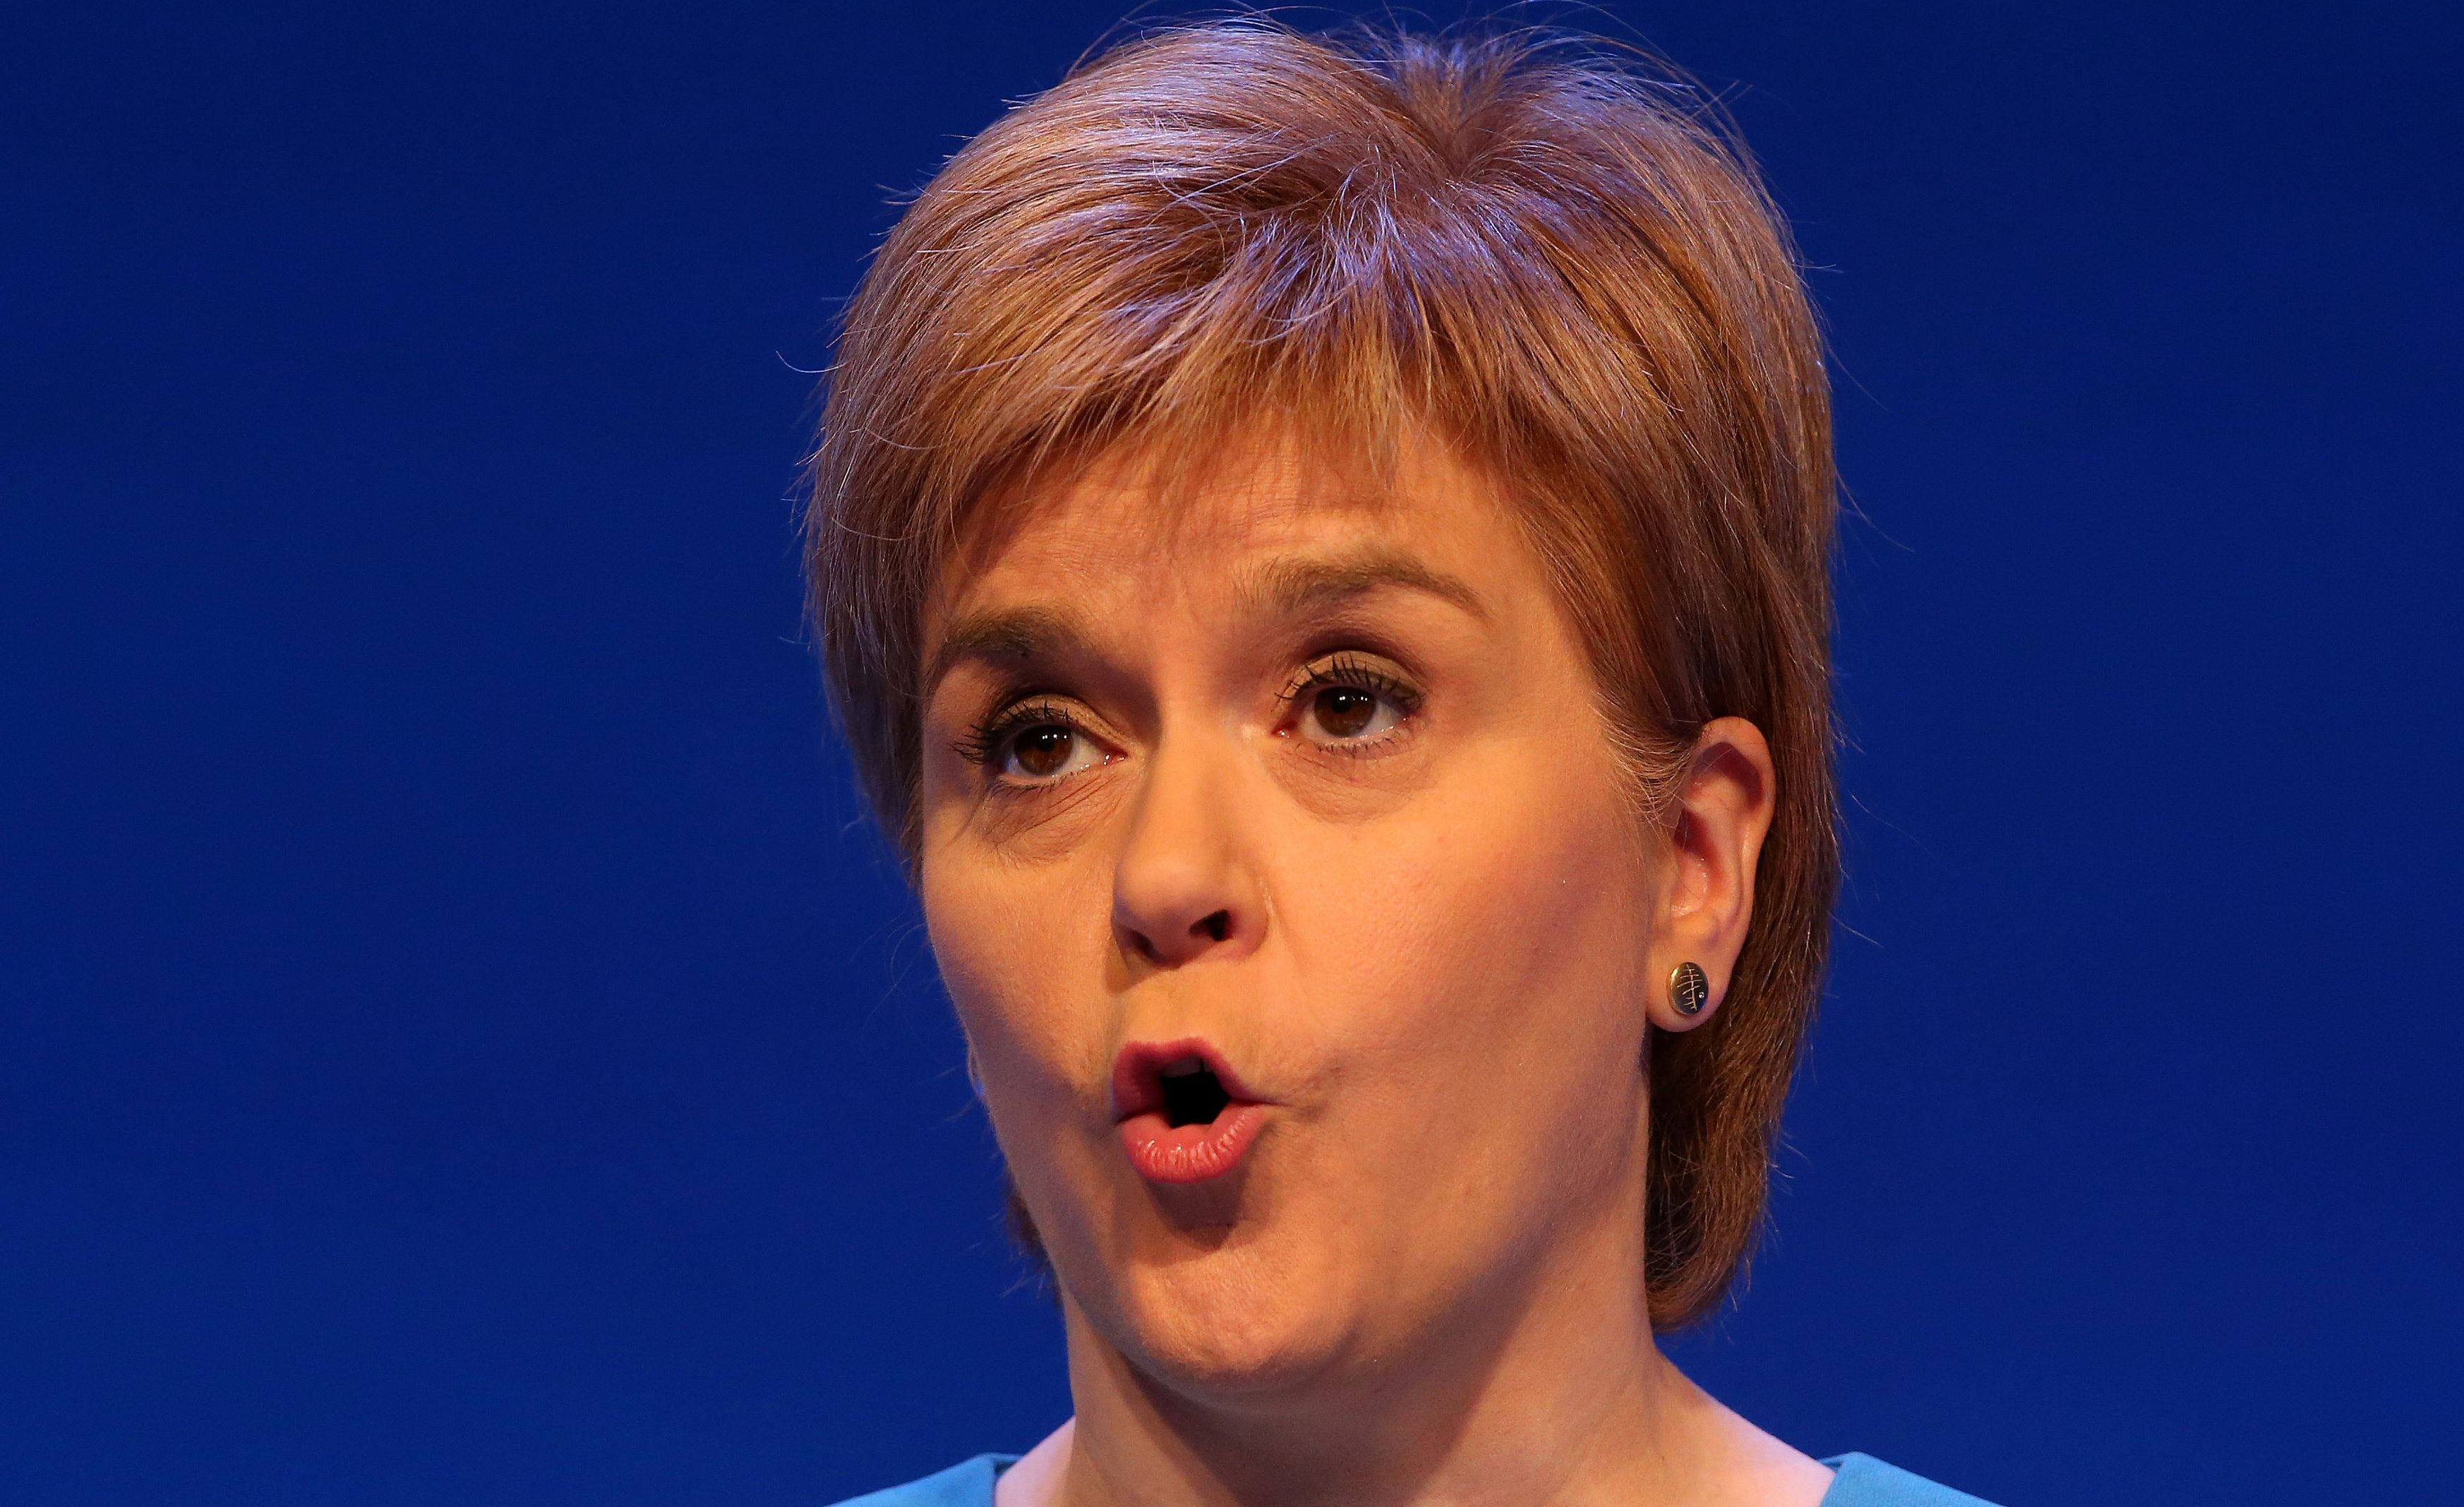 First Minister Nicola Sturgeon speaks at the Royal College of Nursing congress in Glasgow.